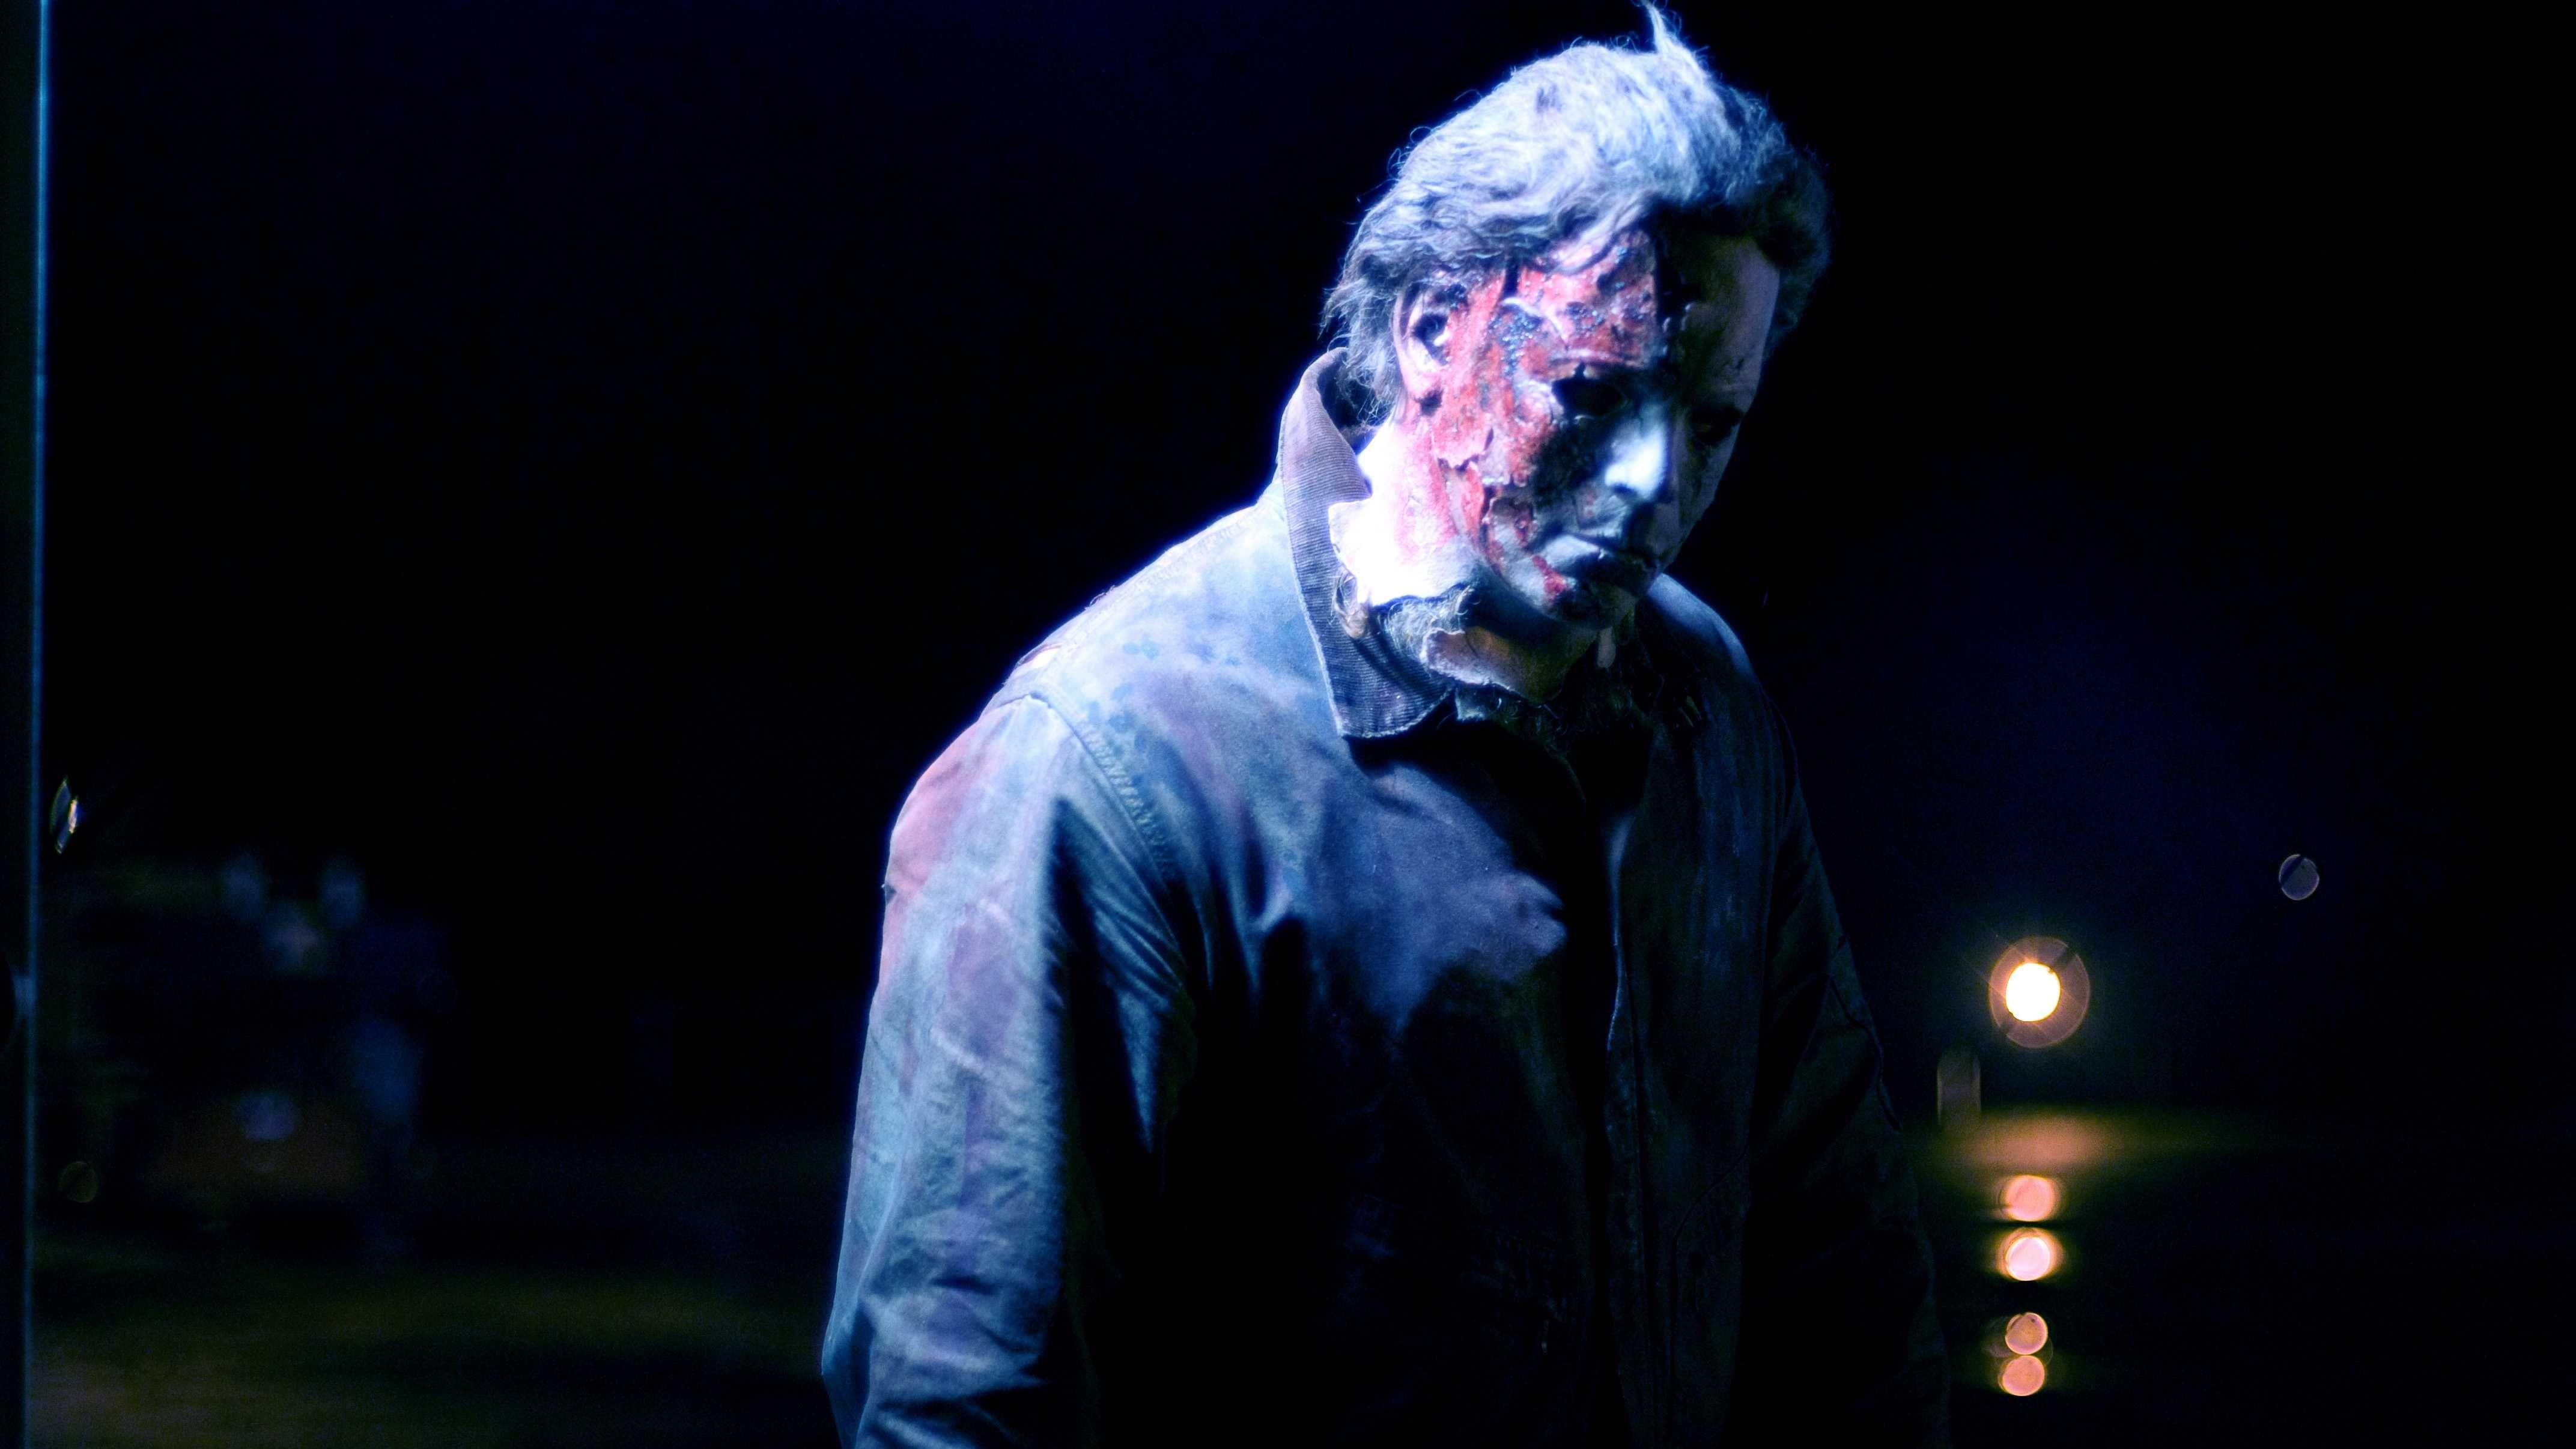 Michael Myers Wallpapers Hd Wallpaper Cave